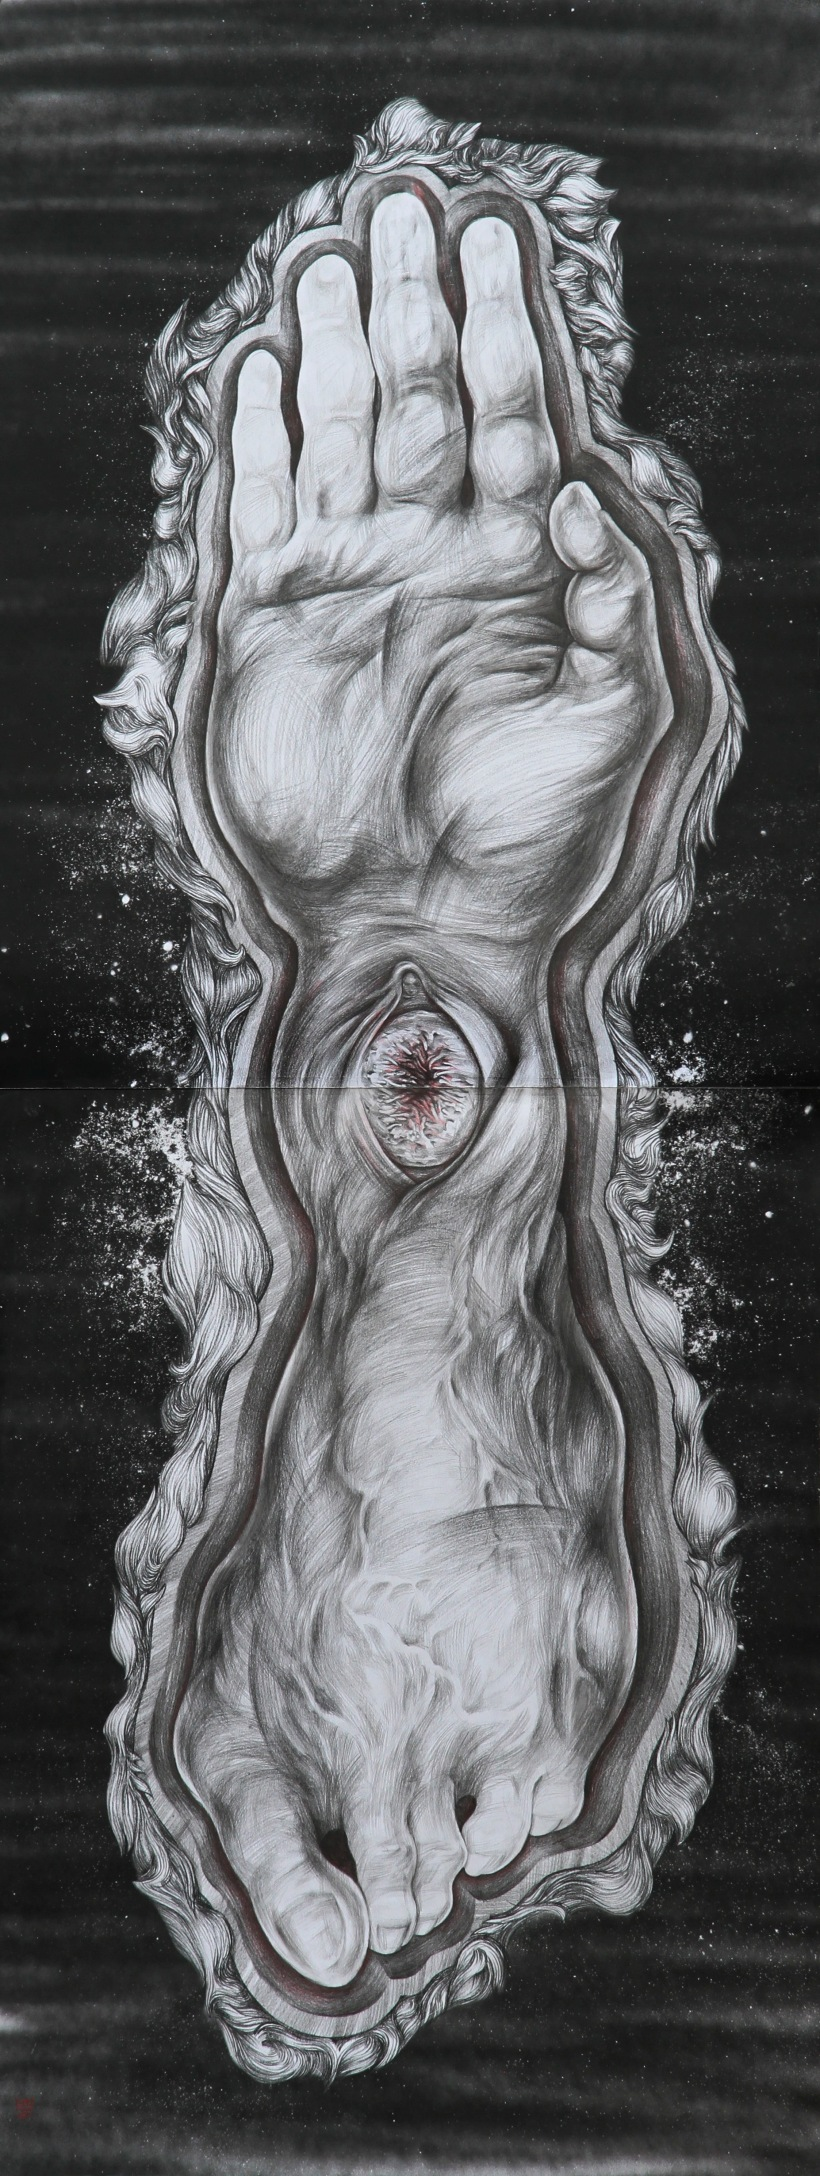 Embryo drawing by artist Bogdan Dobrota, expressive image of body brought together by inexplicable internal force and sacramental vigour.